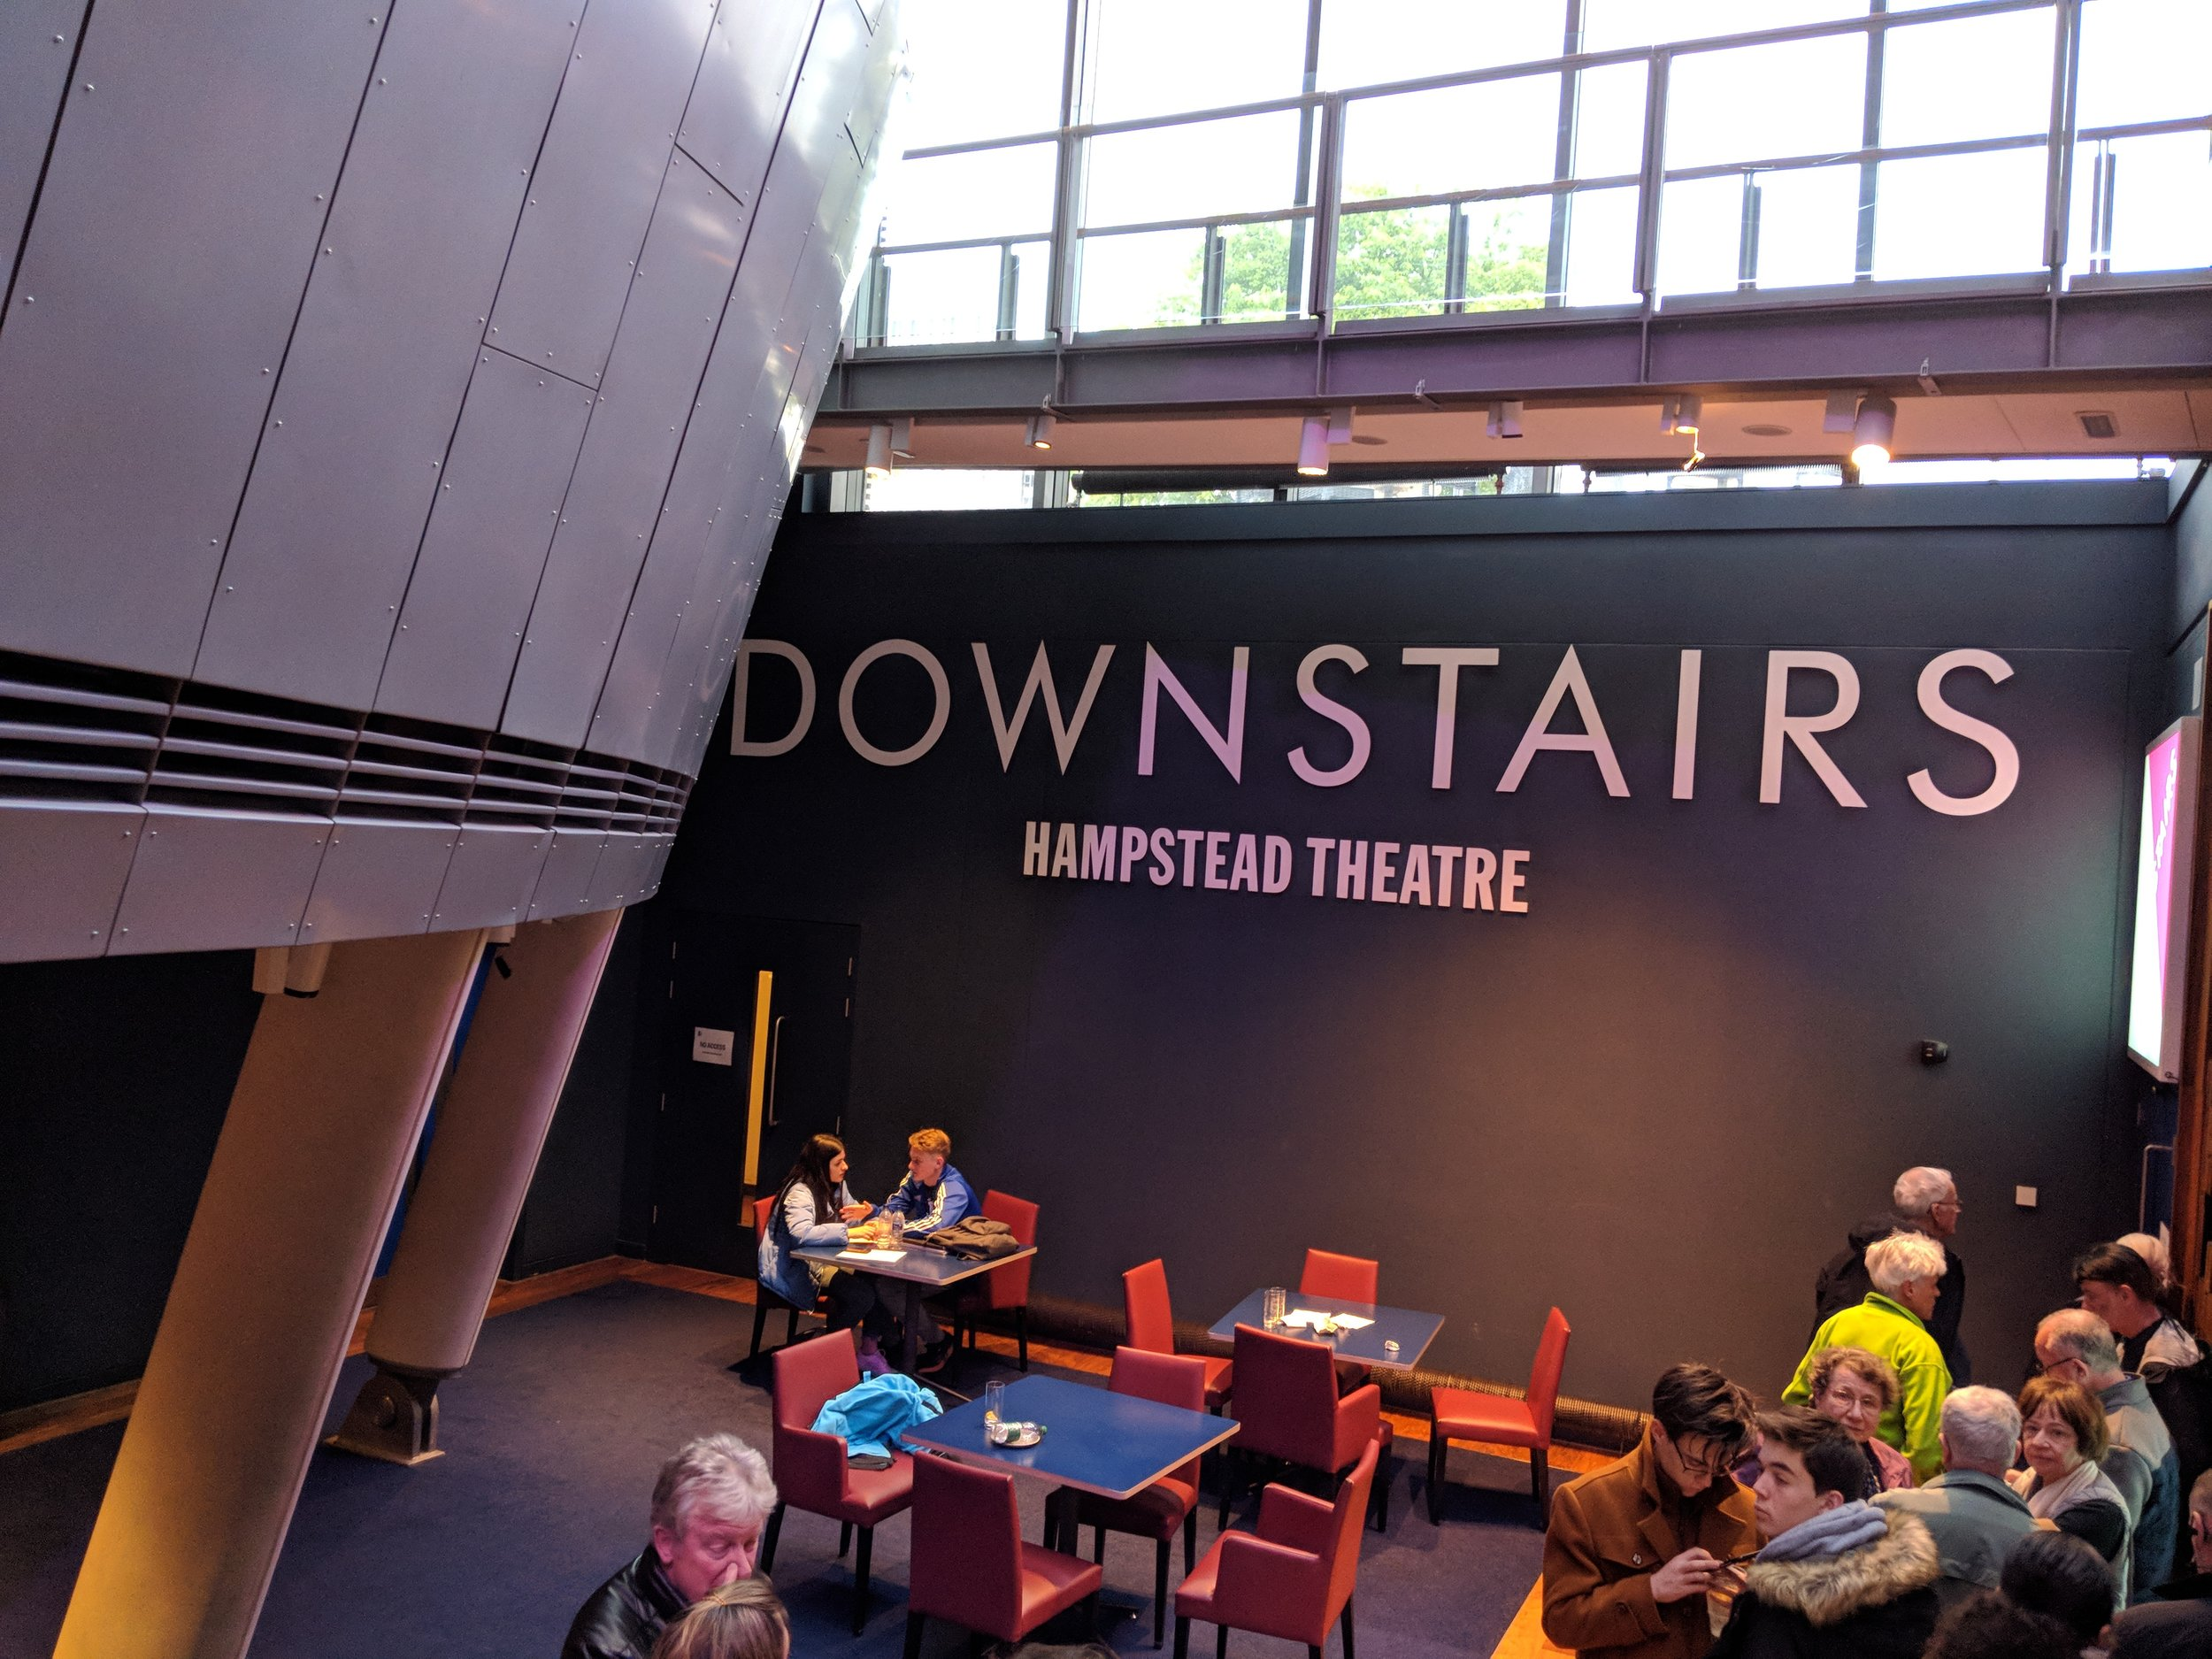 Hampstead Theatre(Downstairs) - visited 06/05/2019